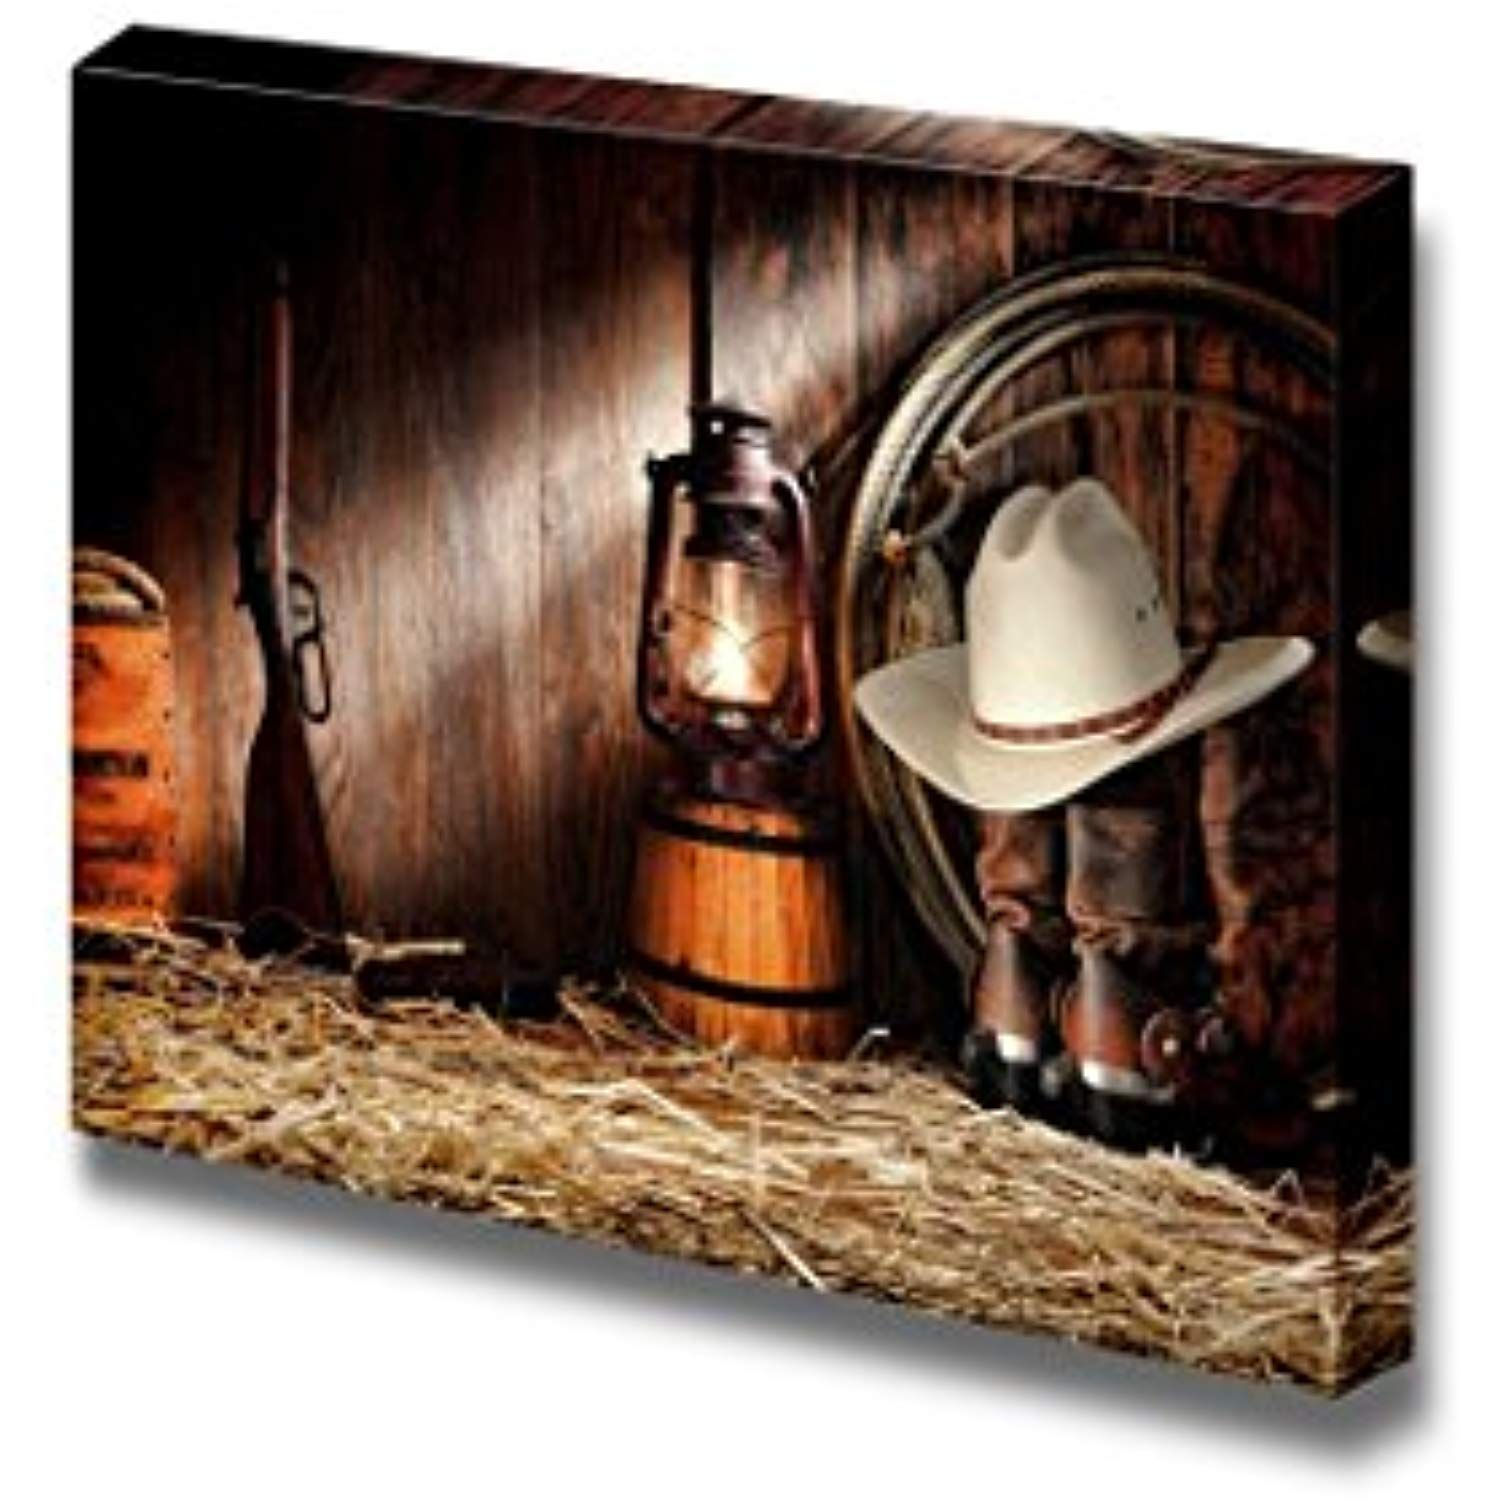 Canvas Prints Wall Art American West Rodeo Cowboy Gear With White Straw Hat Atop Leather Boots Vintage Style Wall Art Wall Art Canvas Prints American West